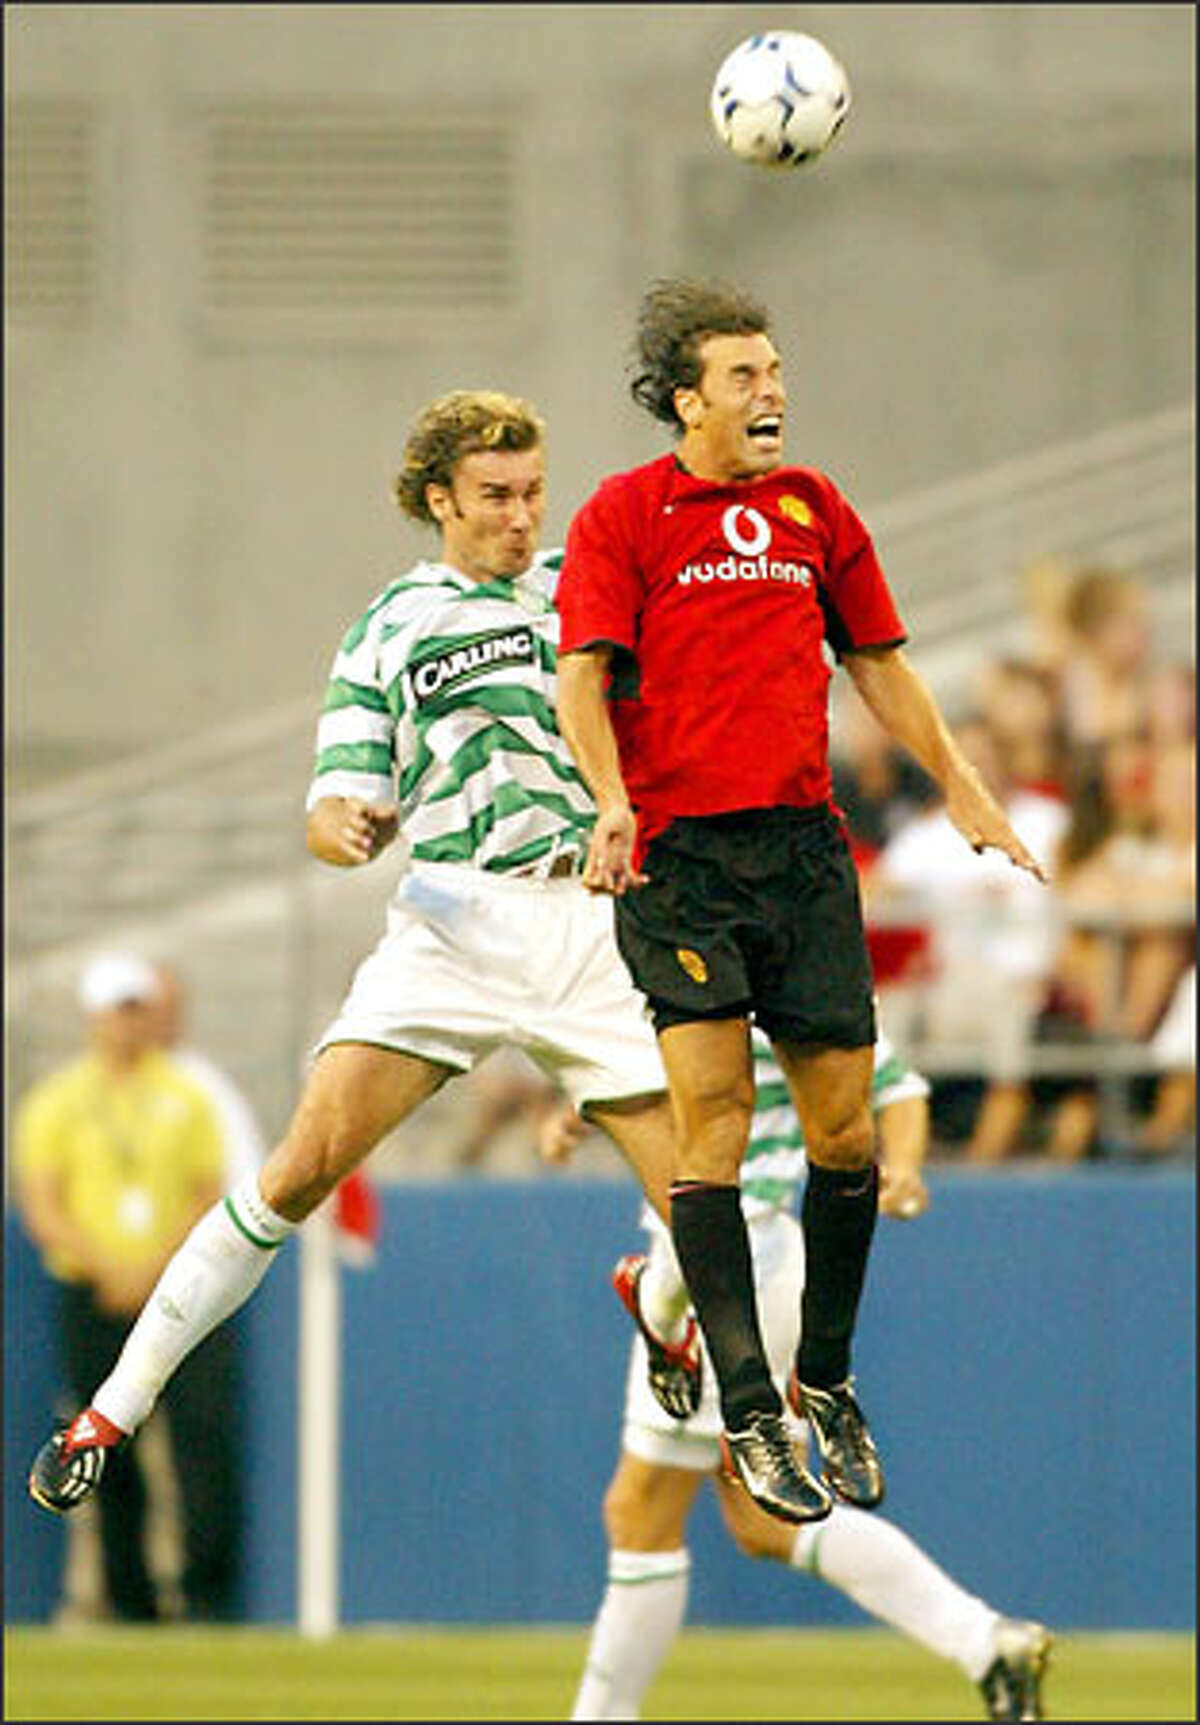 Celtic's Craig Beattie, left, and Manchester United's Ruud van Nistelrooy do their thing during first-half action at Seahawks Stadium. Nistelrooy scored Man U's first goal and set up the second.